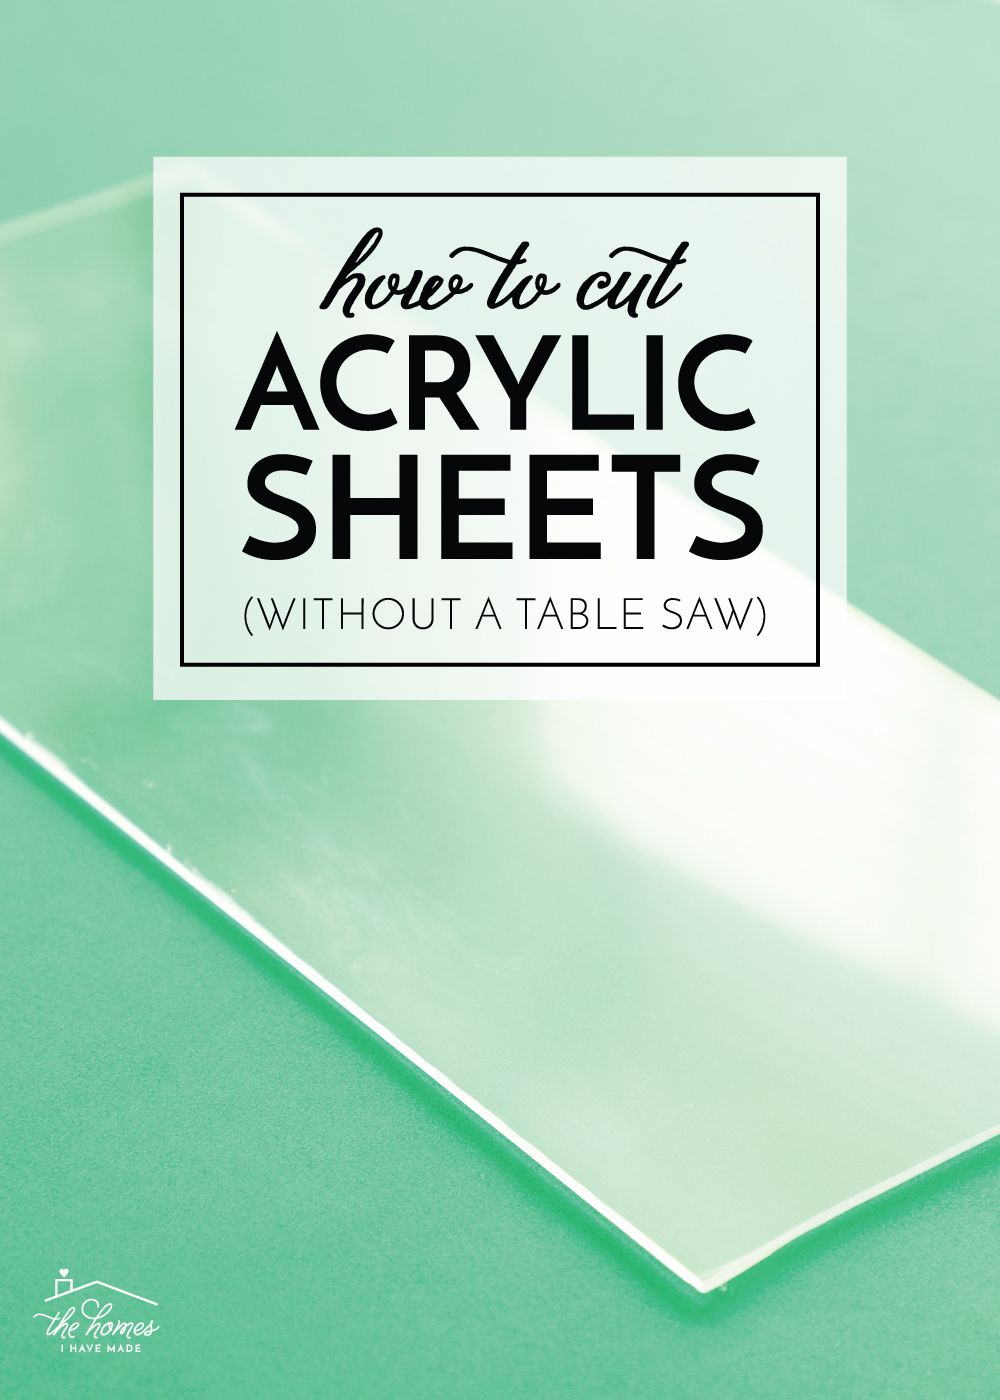 How to Cut Acrylic Sheets (Without a Table Saw) | The Homes I Have Made